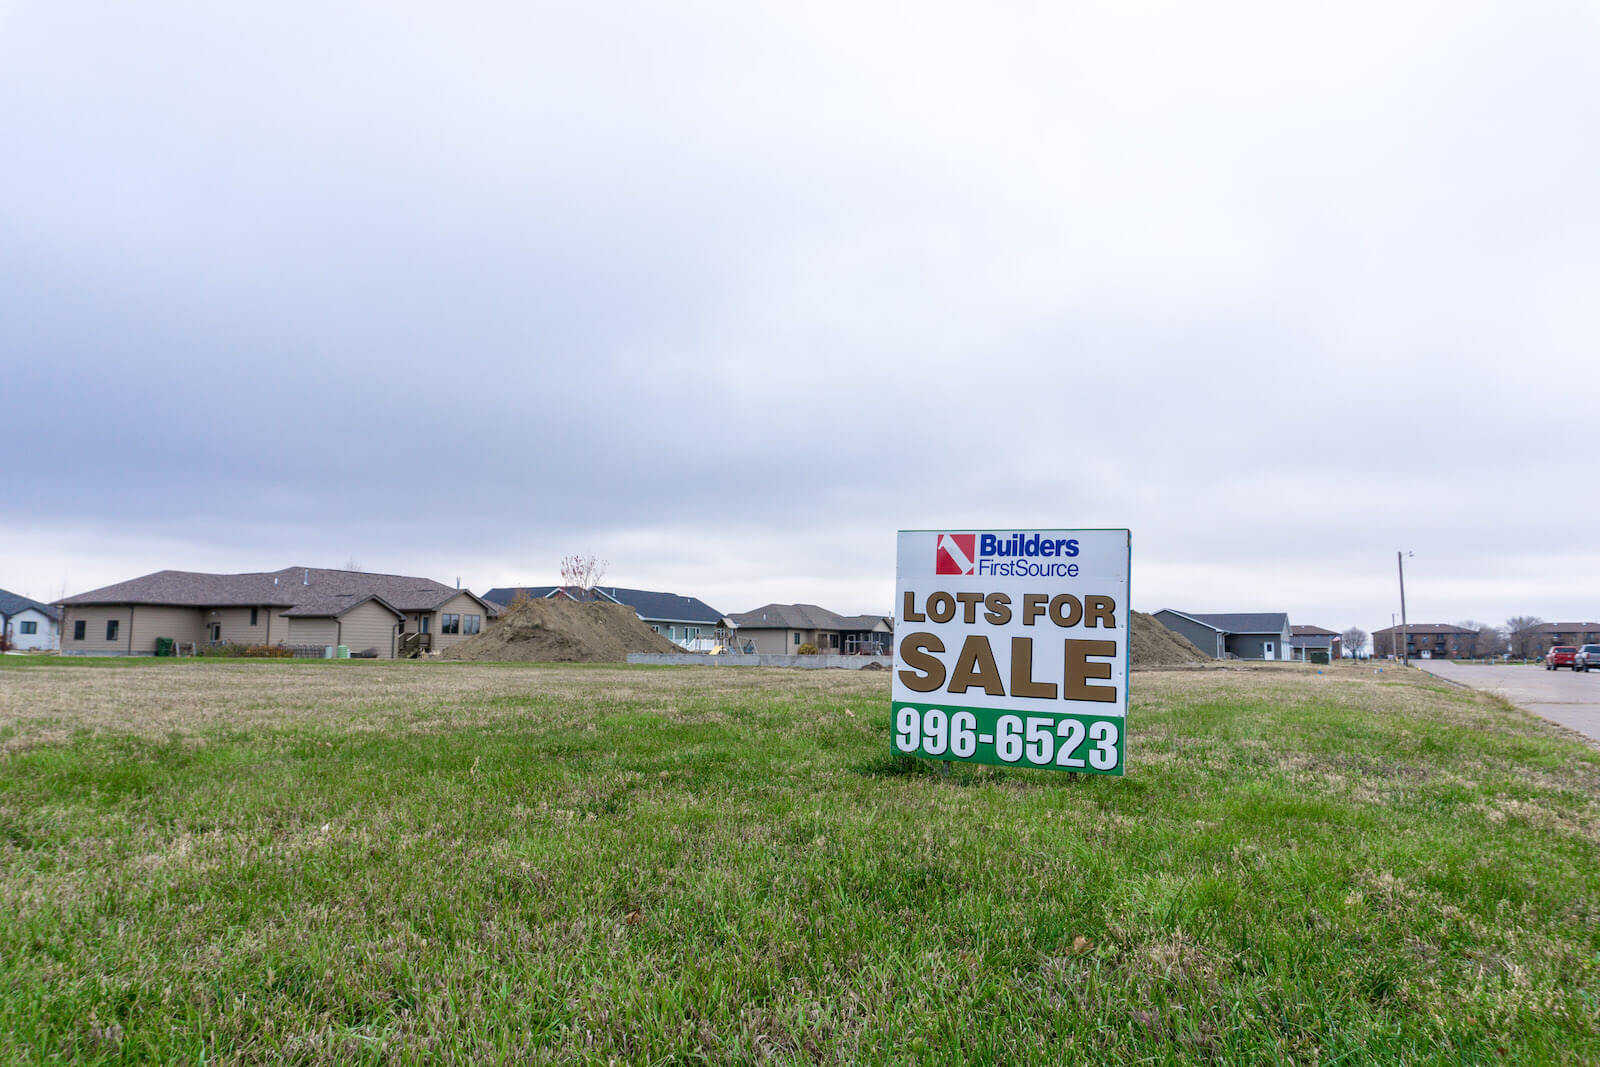 Builders FirstSource Mitchell Lots for Sale.jpg